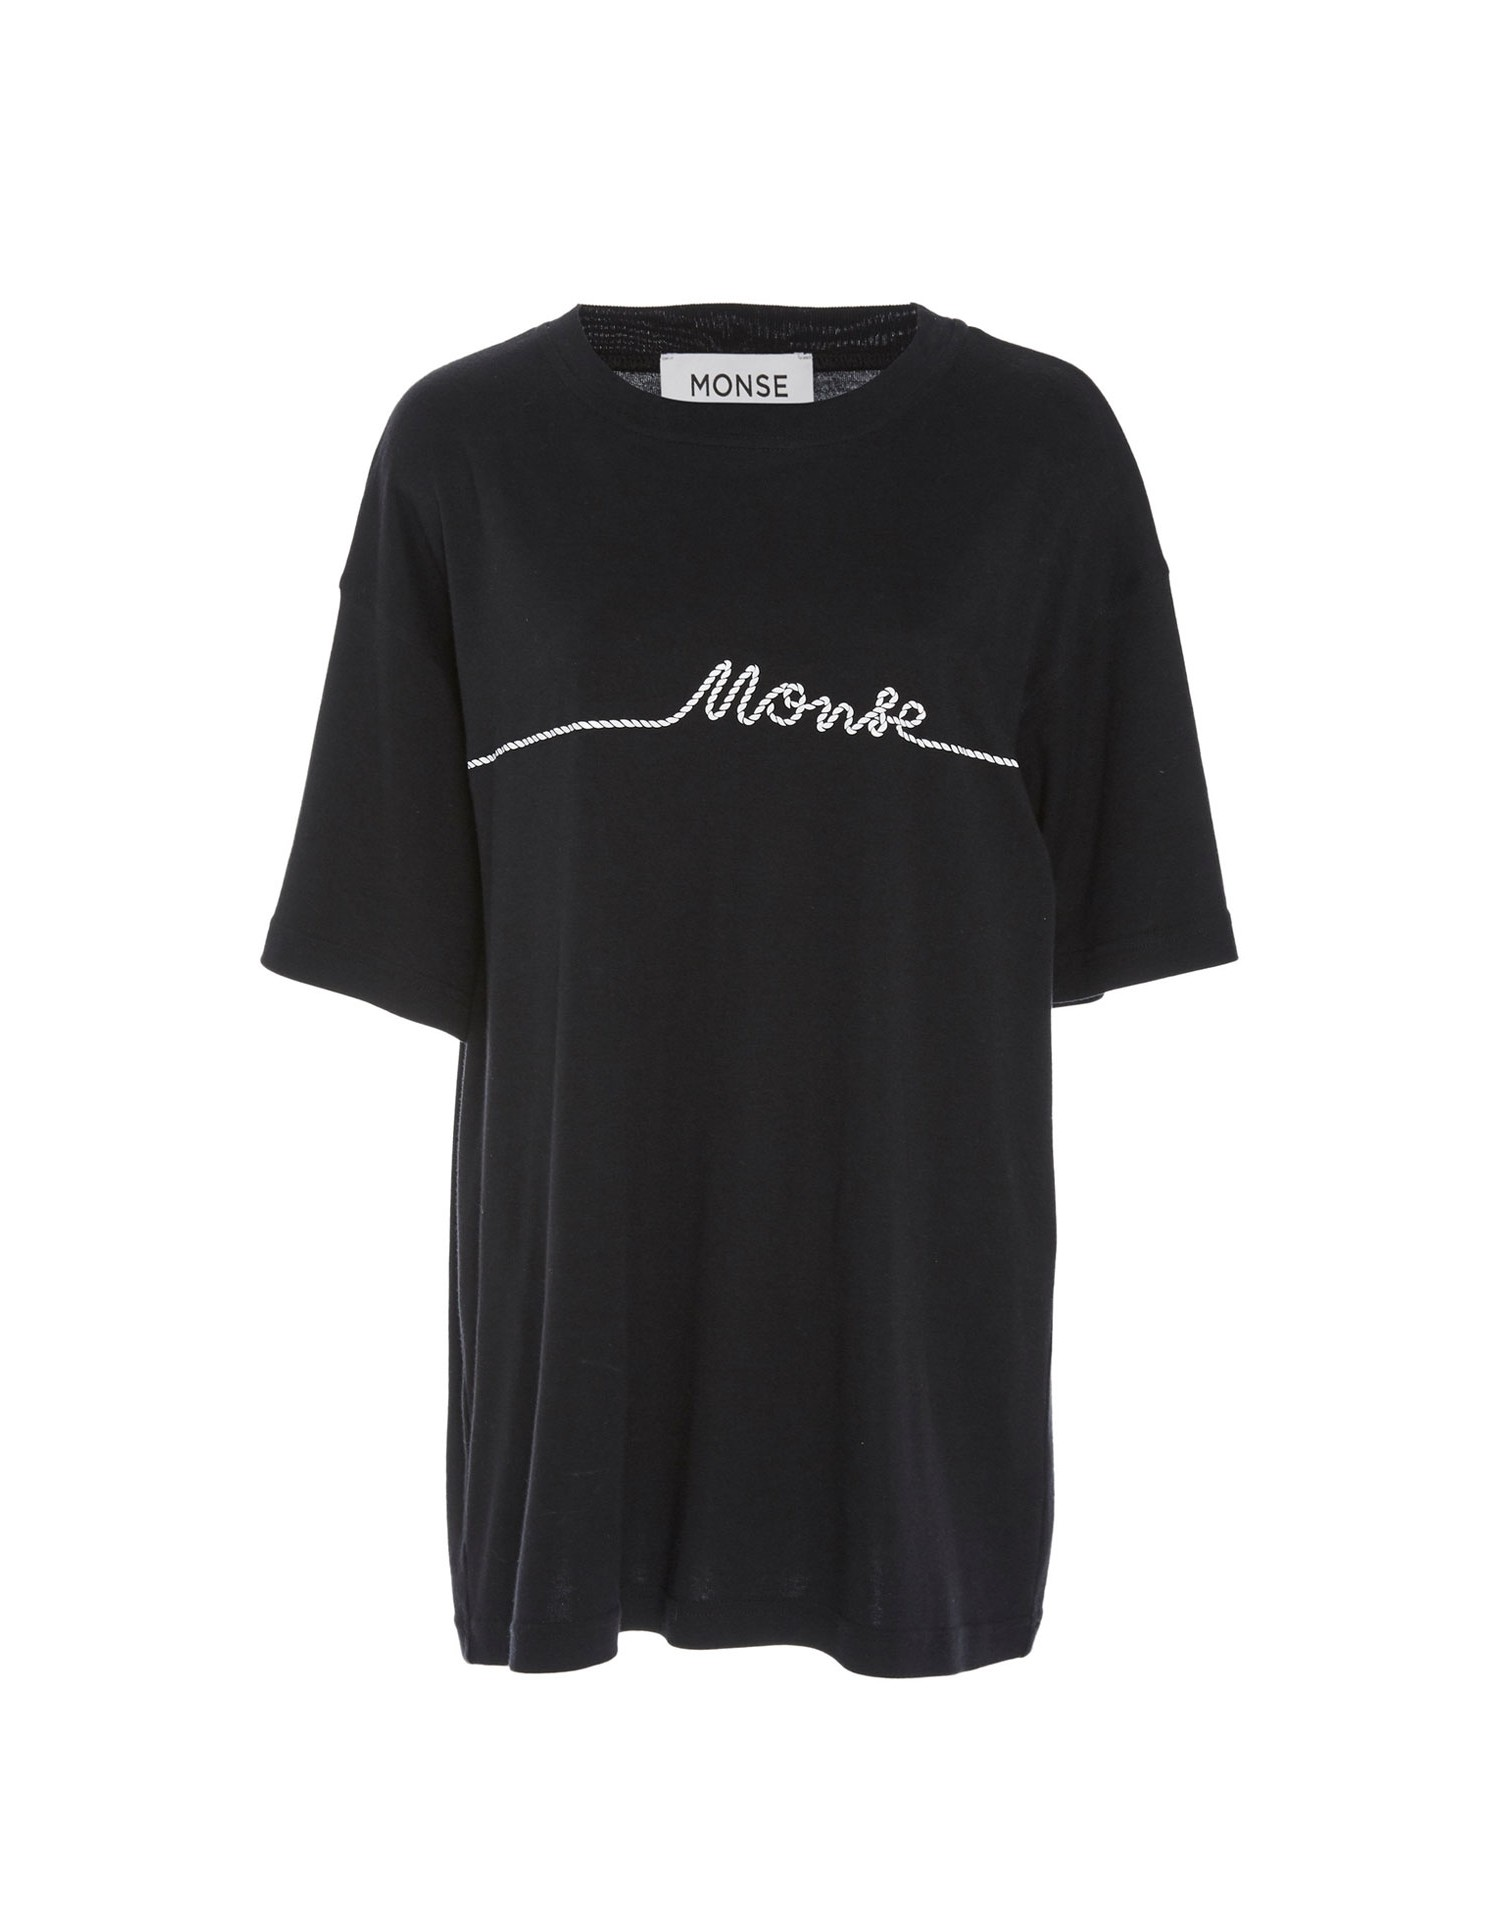 Monse Unisex Small Rope Print Tee in Black on Model Front